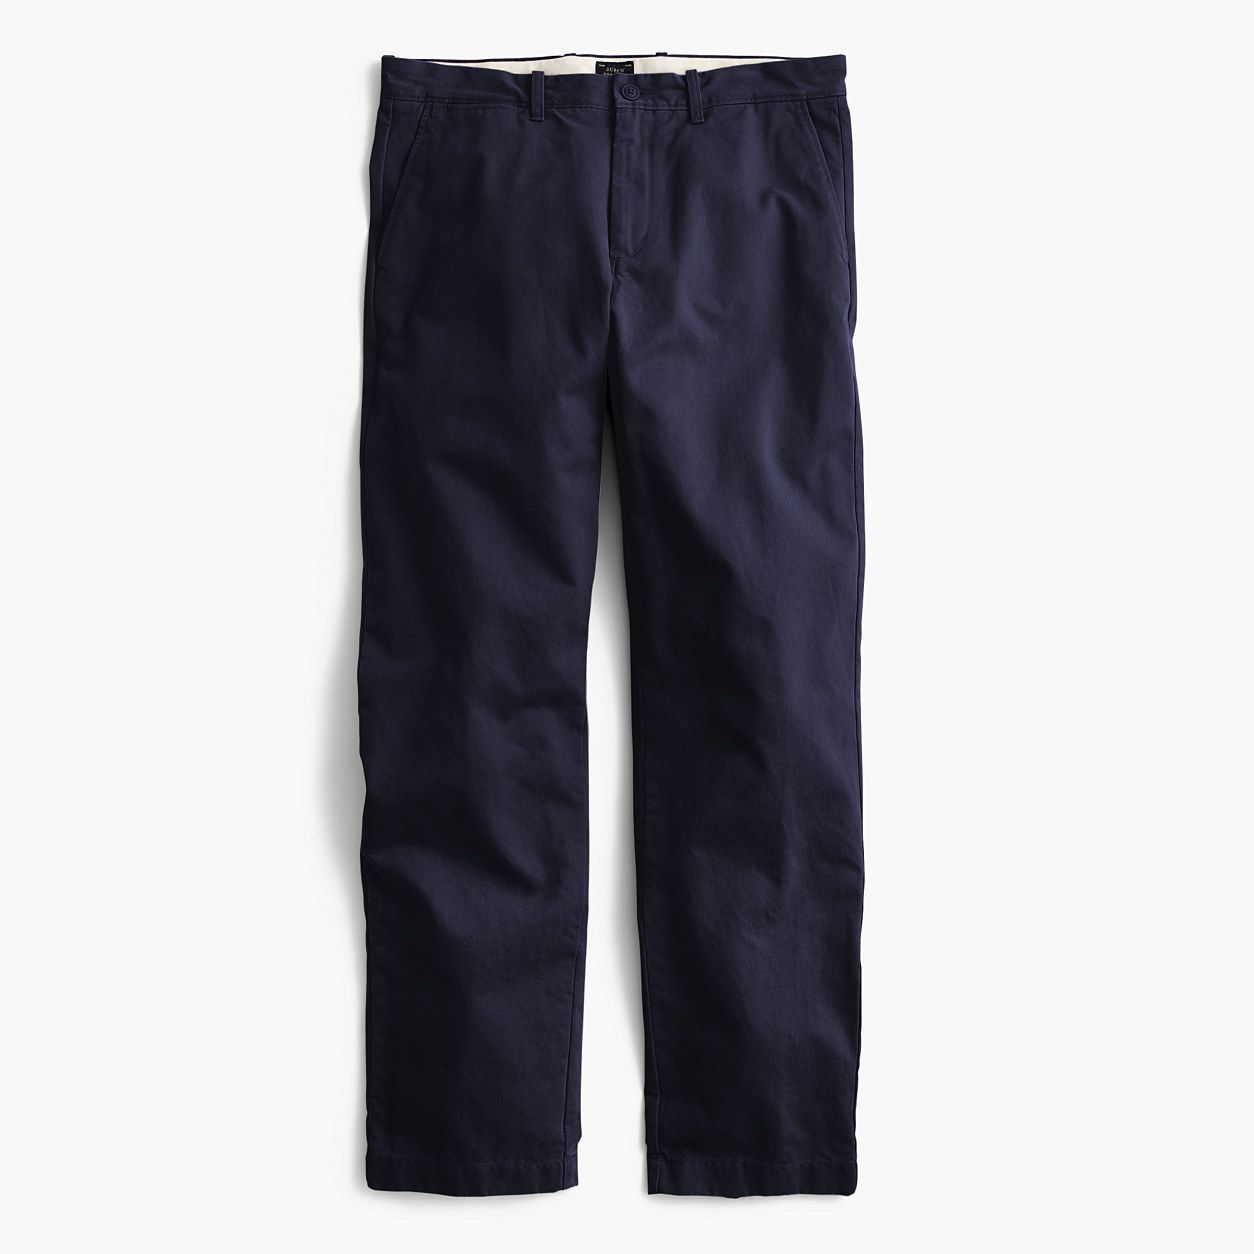 07aeab7ec101d4 J.Crew Mens Broken-In Chino Pant In 1450 Relaxed Fit (Size 36x34 ...